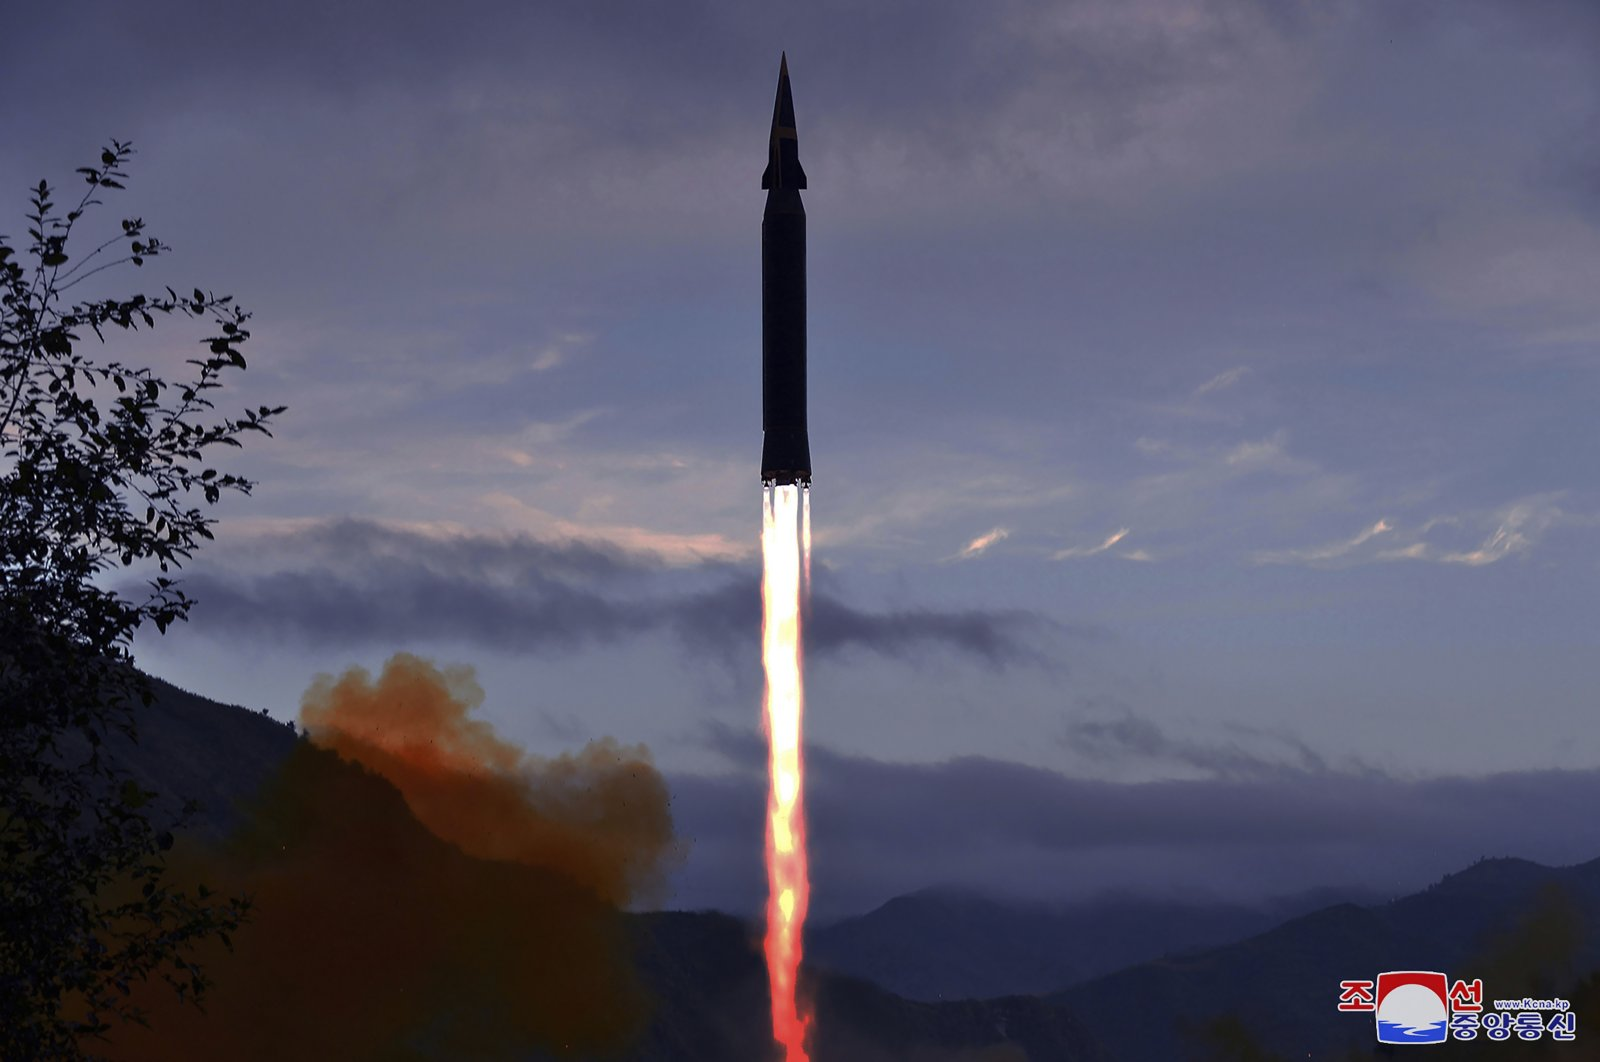 File photo provided by the North Korean government shows what North Korea claims to be a new hypersonic missile launched from Toyang-ri, Ryongrim County, Jagang Province, North Korea, Sept. 28, 2021. (Korean Central News Agency/Korea News Service via AP)